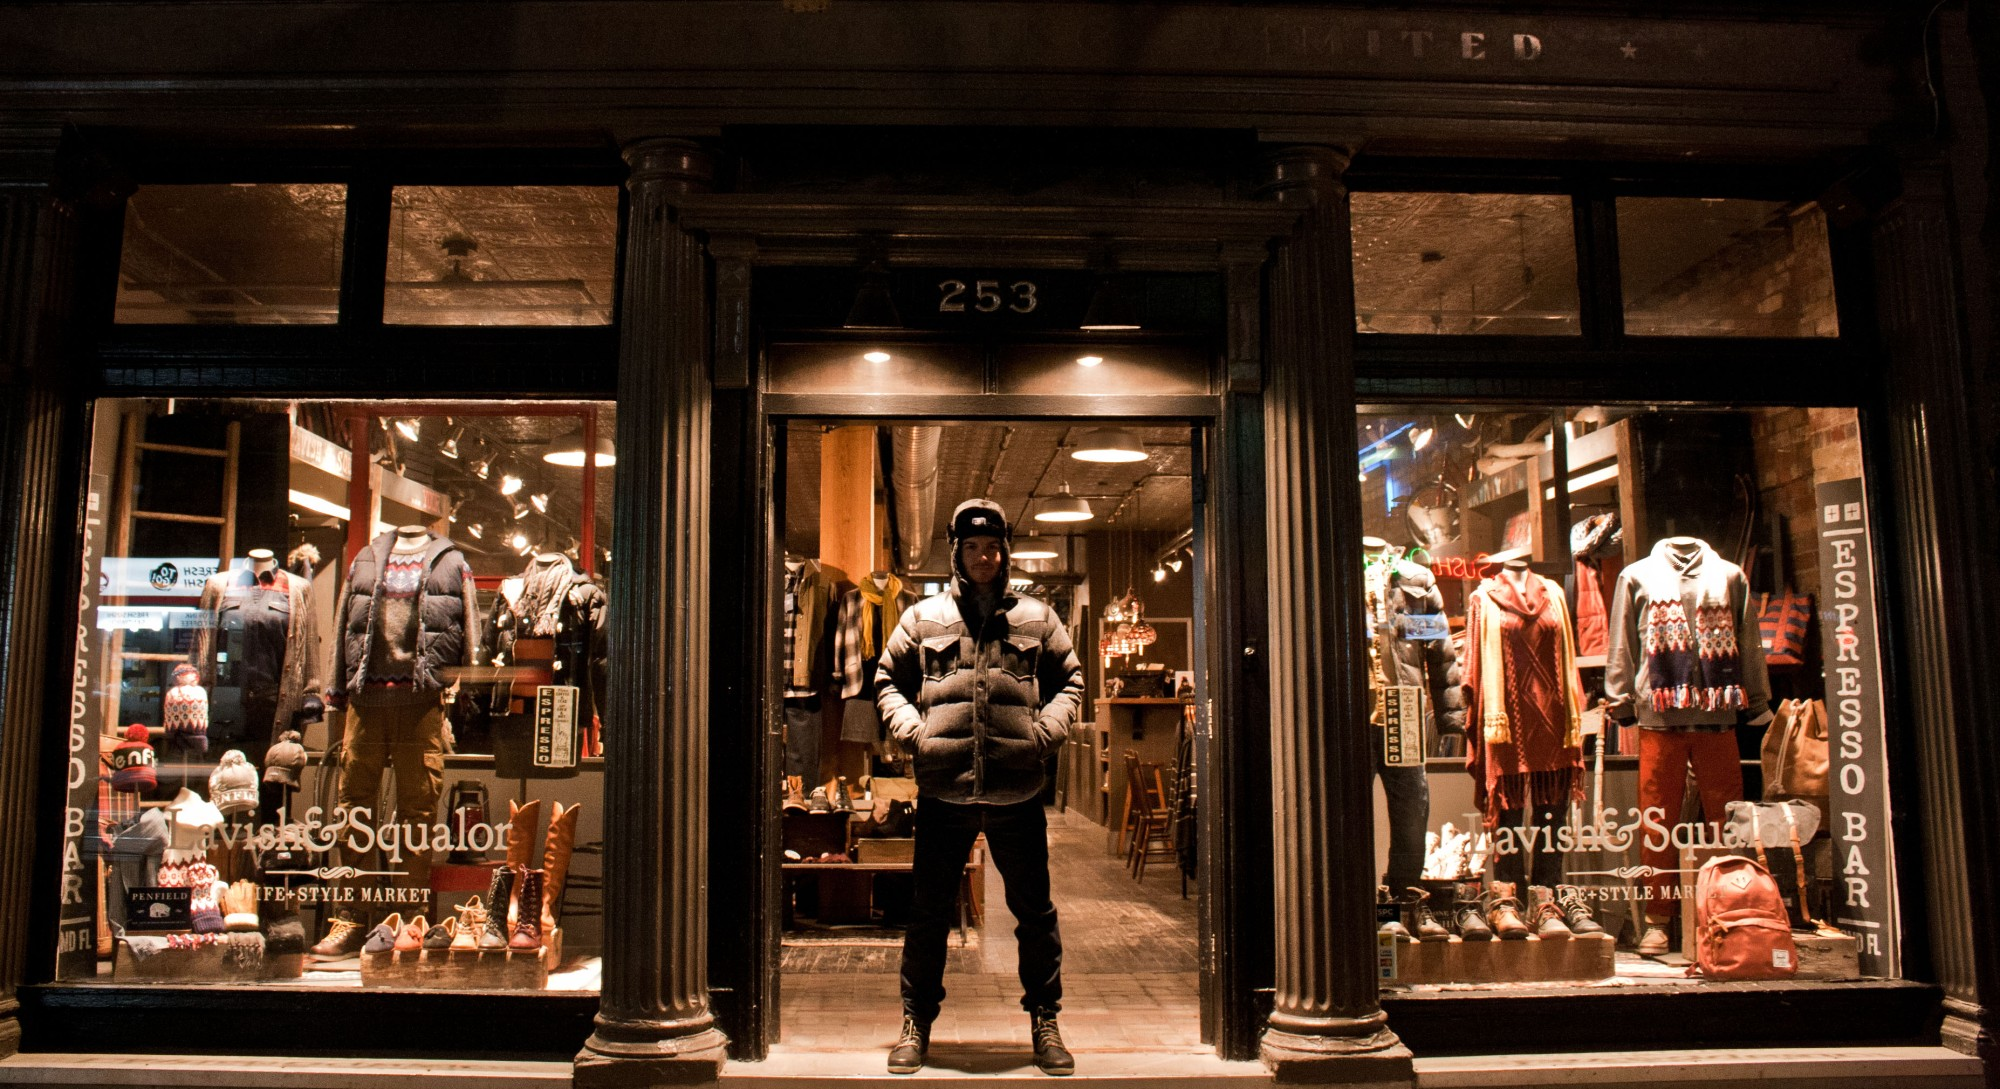 images_penfield storefront_Untitled-4